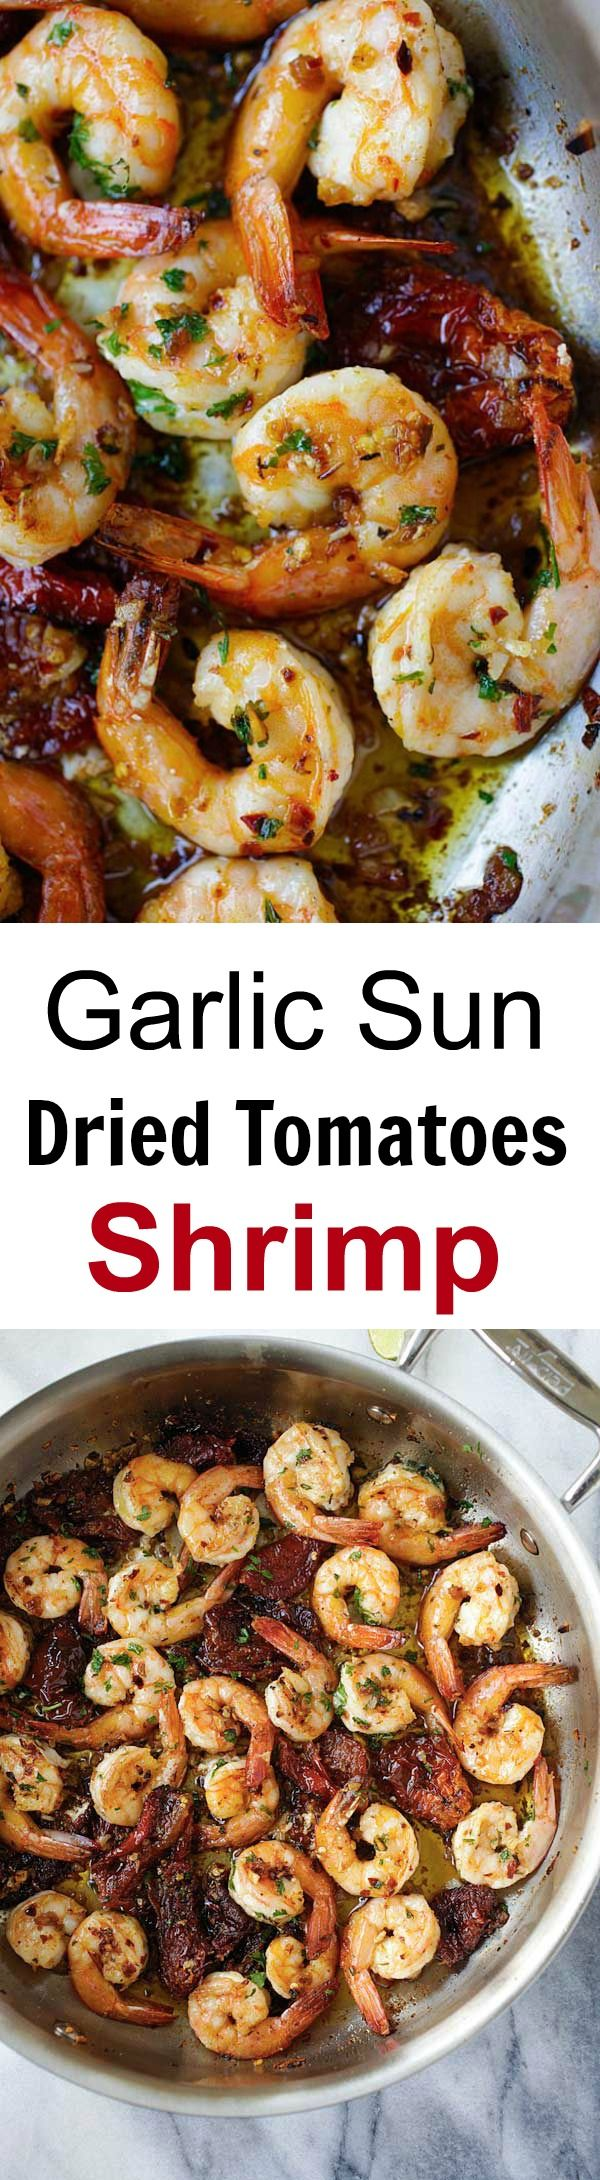 Garlic Sun-Dried Tomatoes Roasted Shrimp - Best garlic roasted shrimp recipe ever! Learn how to make this Spanish/Mediterranean dish | rasamalaysia.com